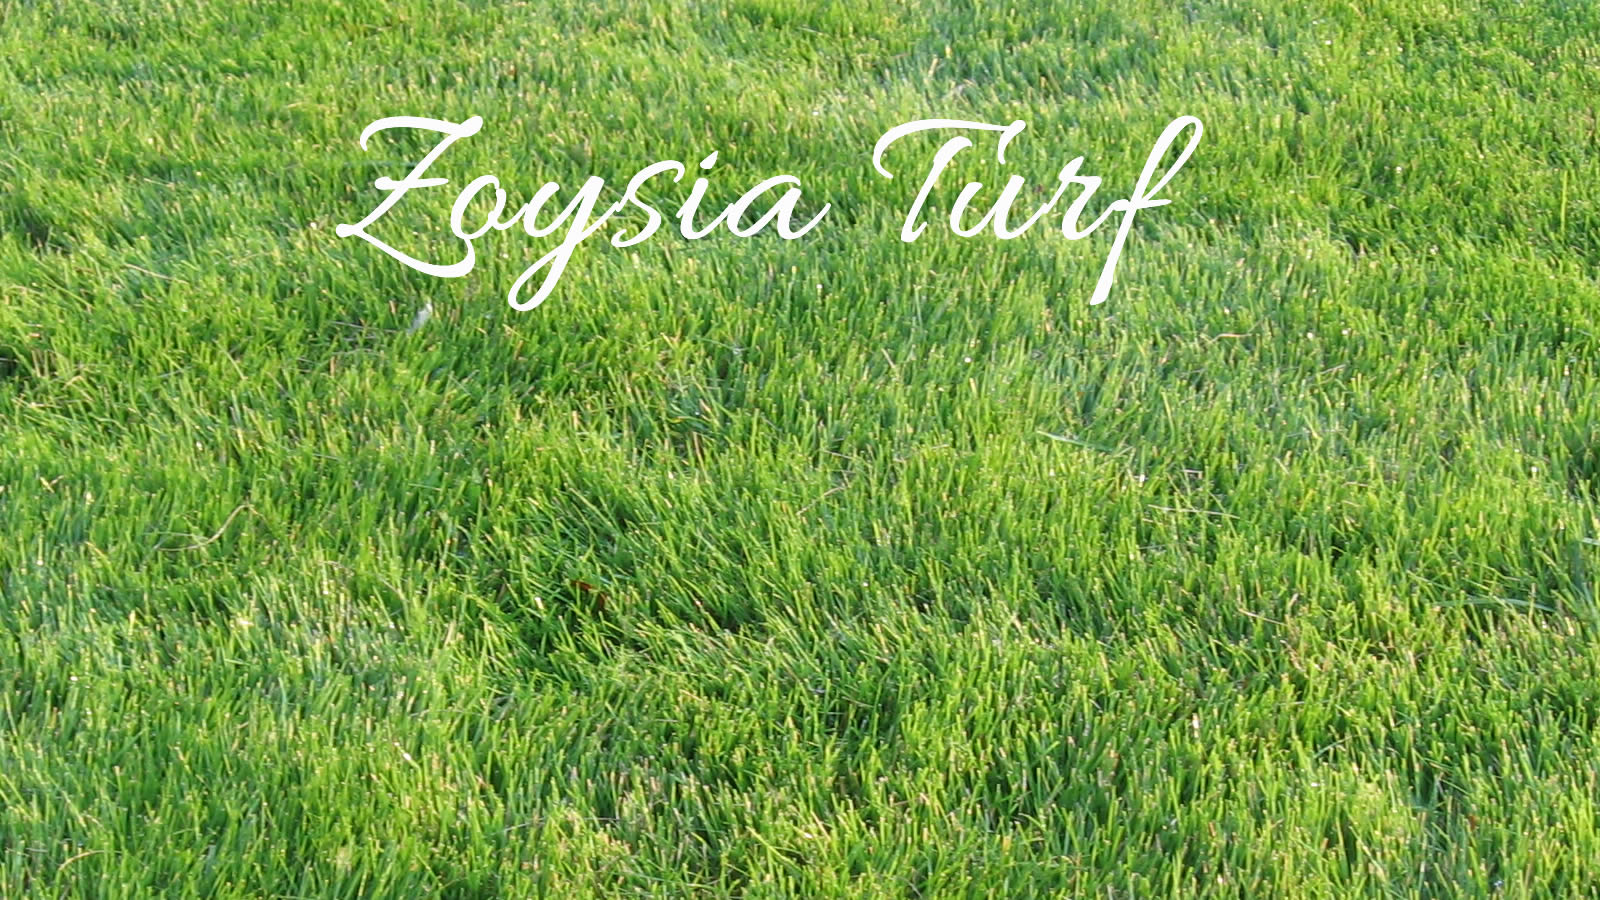 Types Of Turf Grass 28 Images The Complete Beginner S Guide To Lawn Grass Freedom Lawns